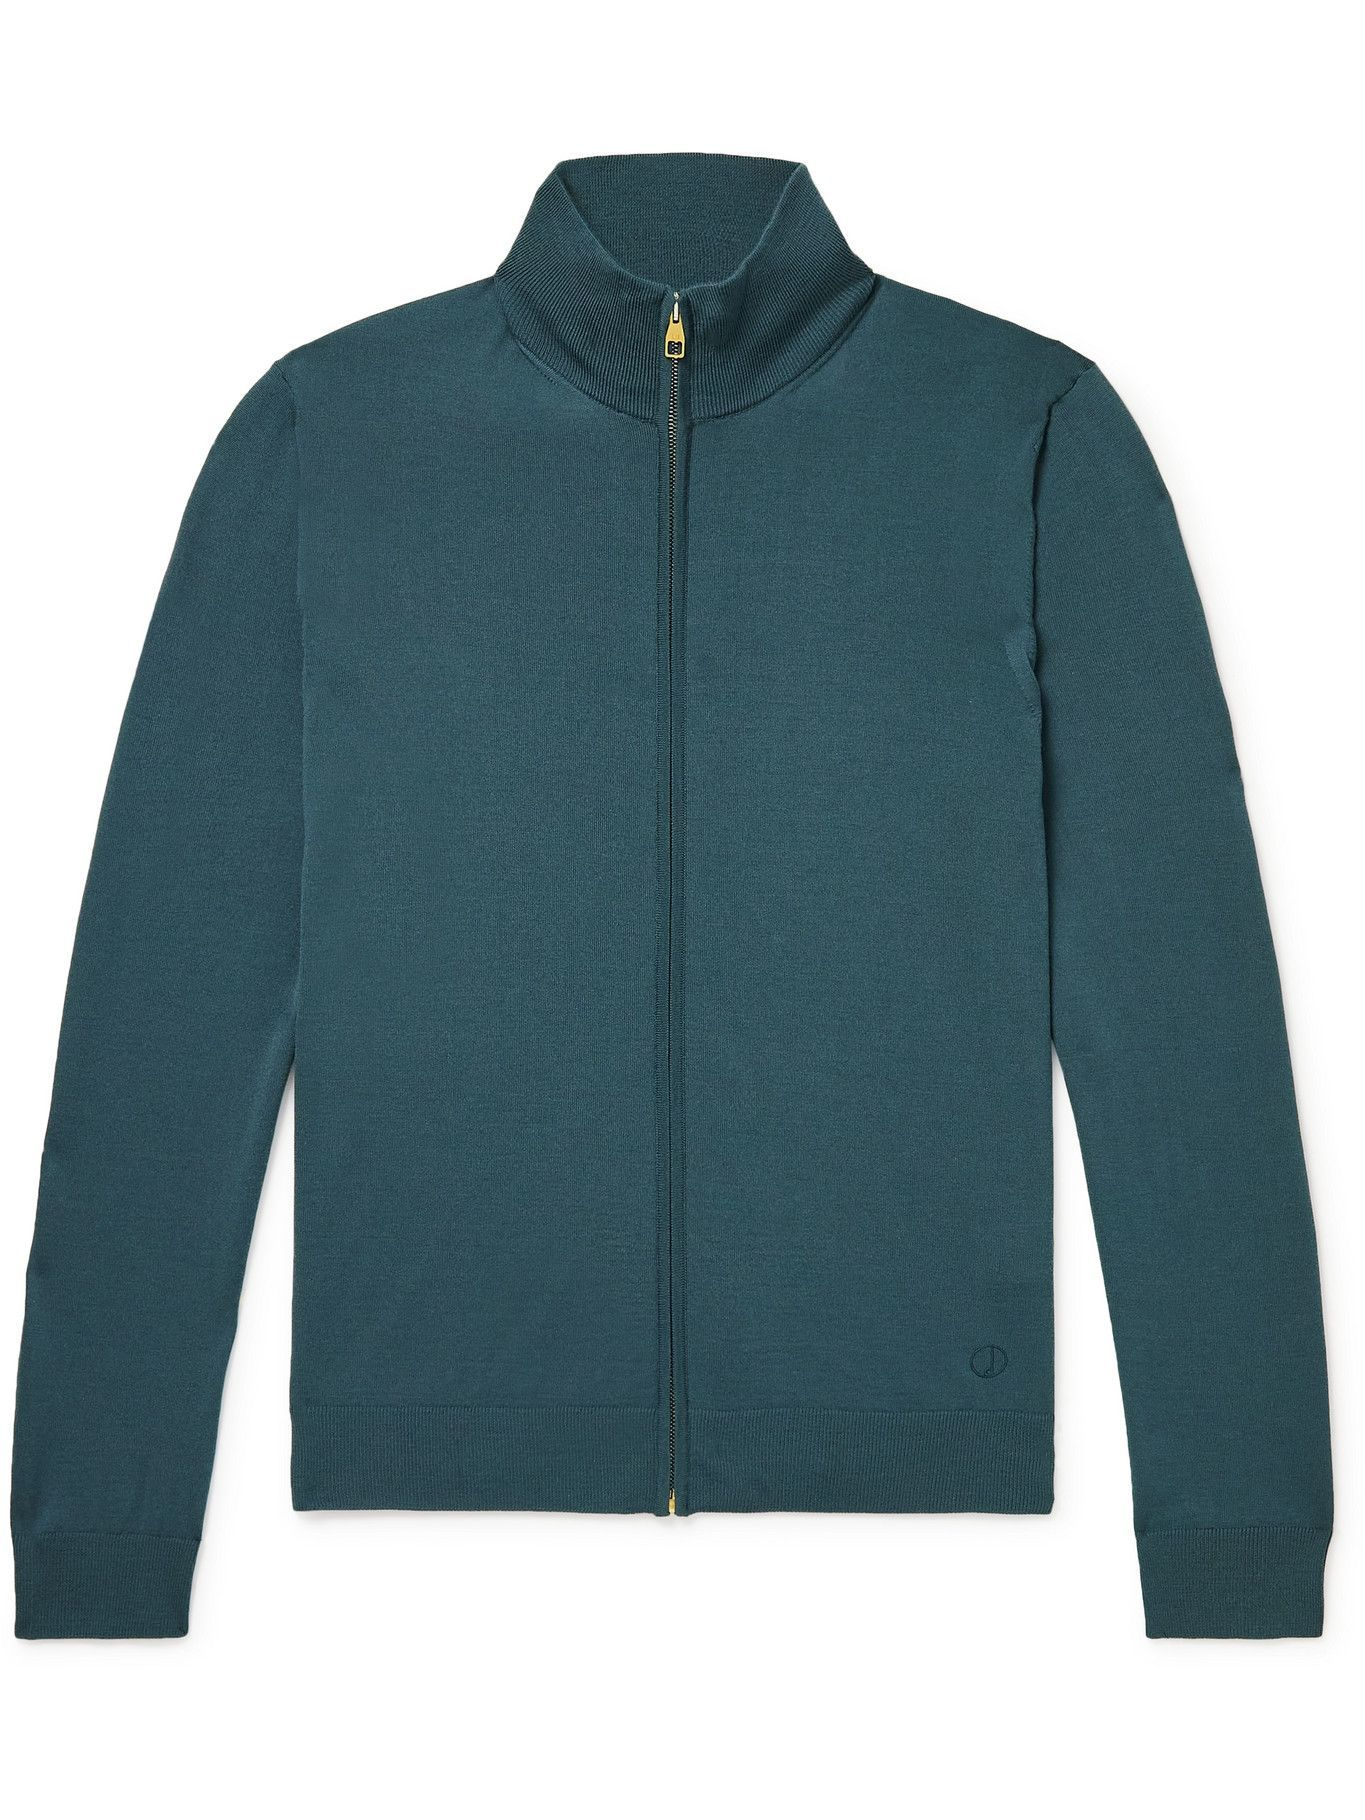 DUNHILL - Logo-Embroidered Merino Wool Zip-Up Sweater - Blue